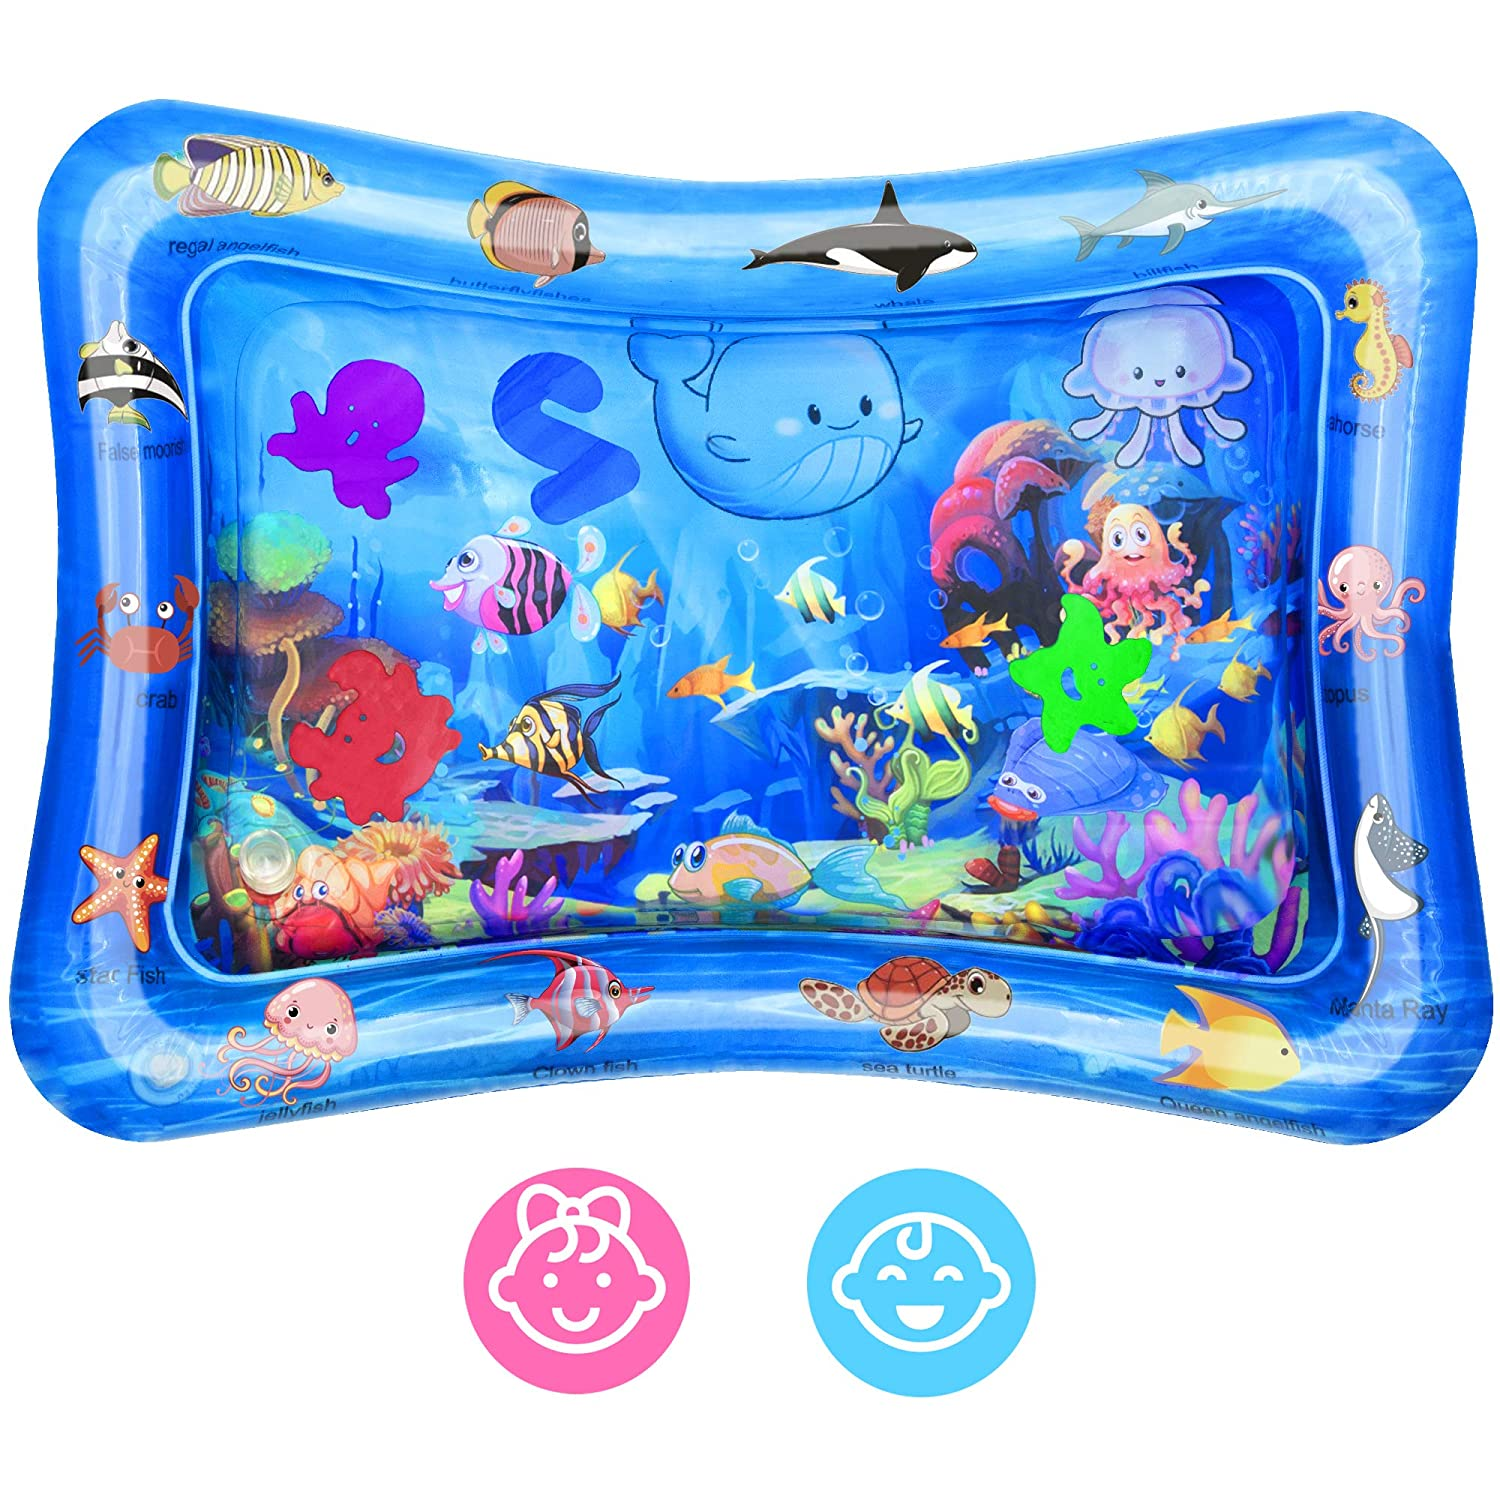 Bright One Tummy Time Water Play Mat Sensory Baby Toy for Boys and Girls Inflatable Play Mat for Infants and Toddlers